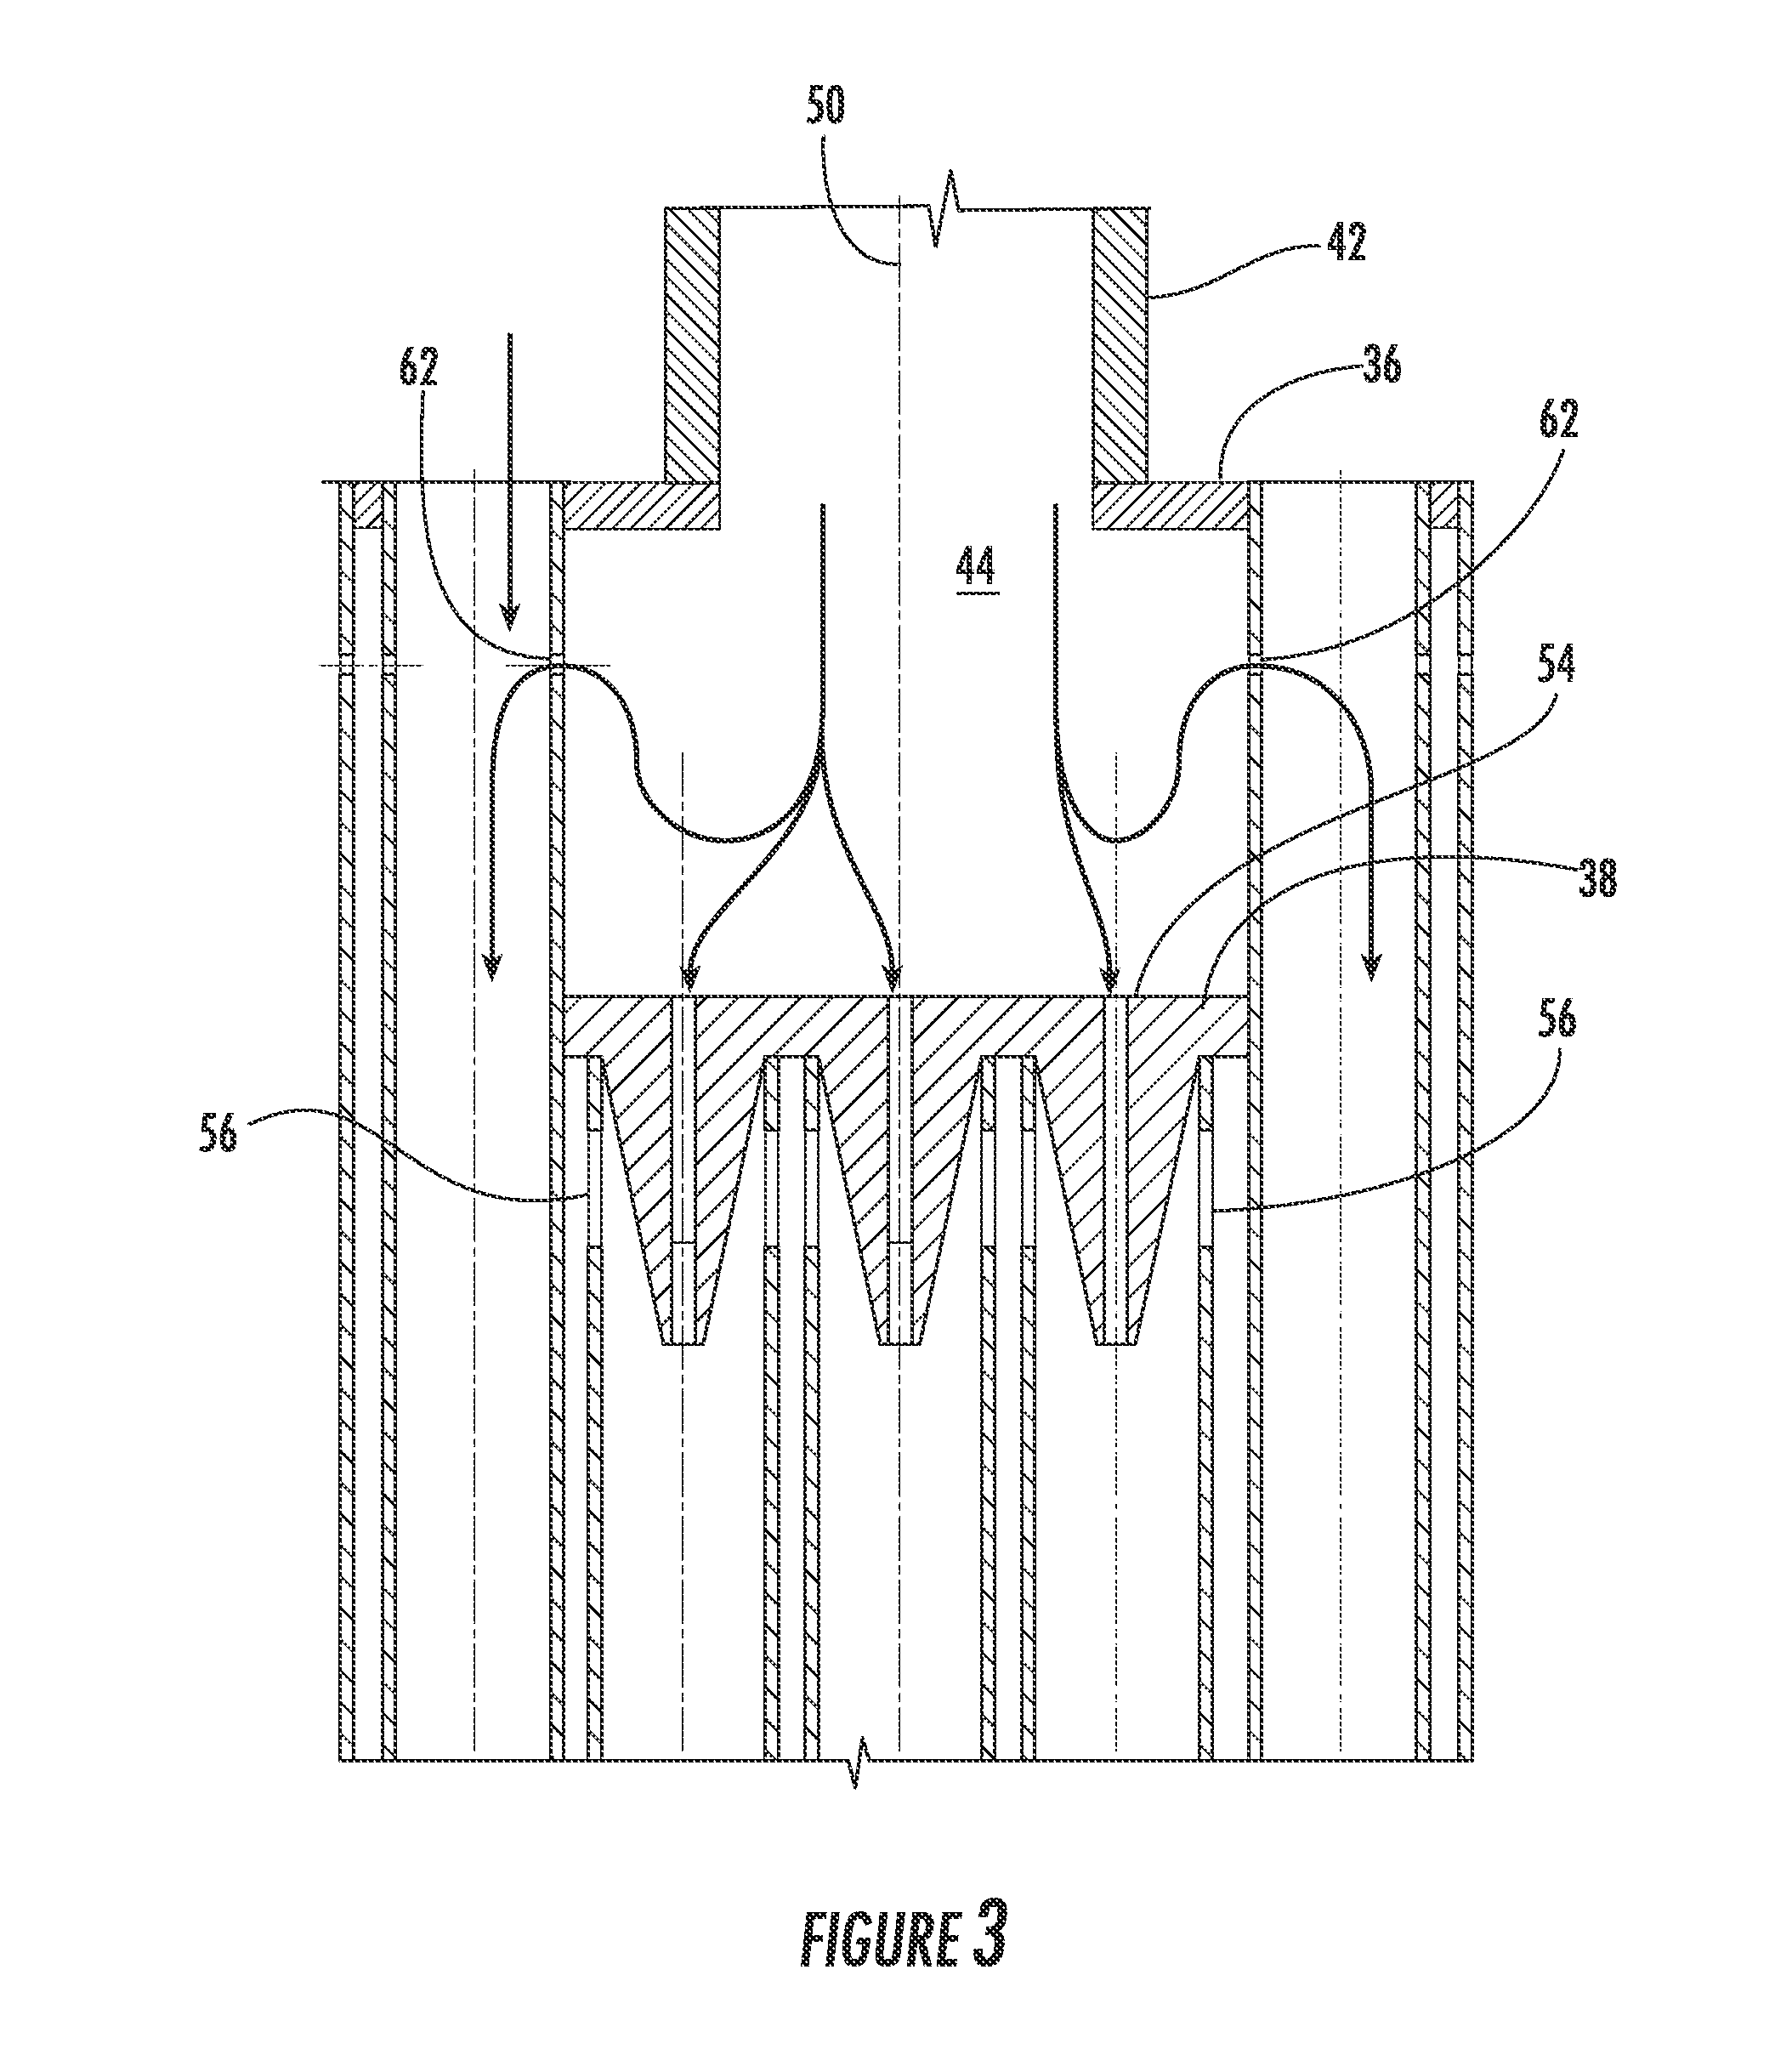 Patent US Apparatus and method for mixing fuel in a gas